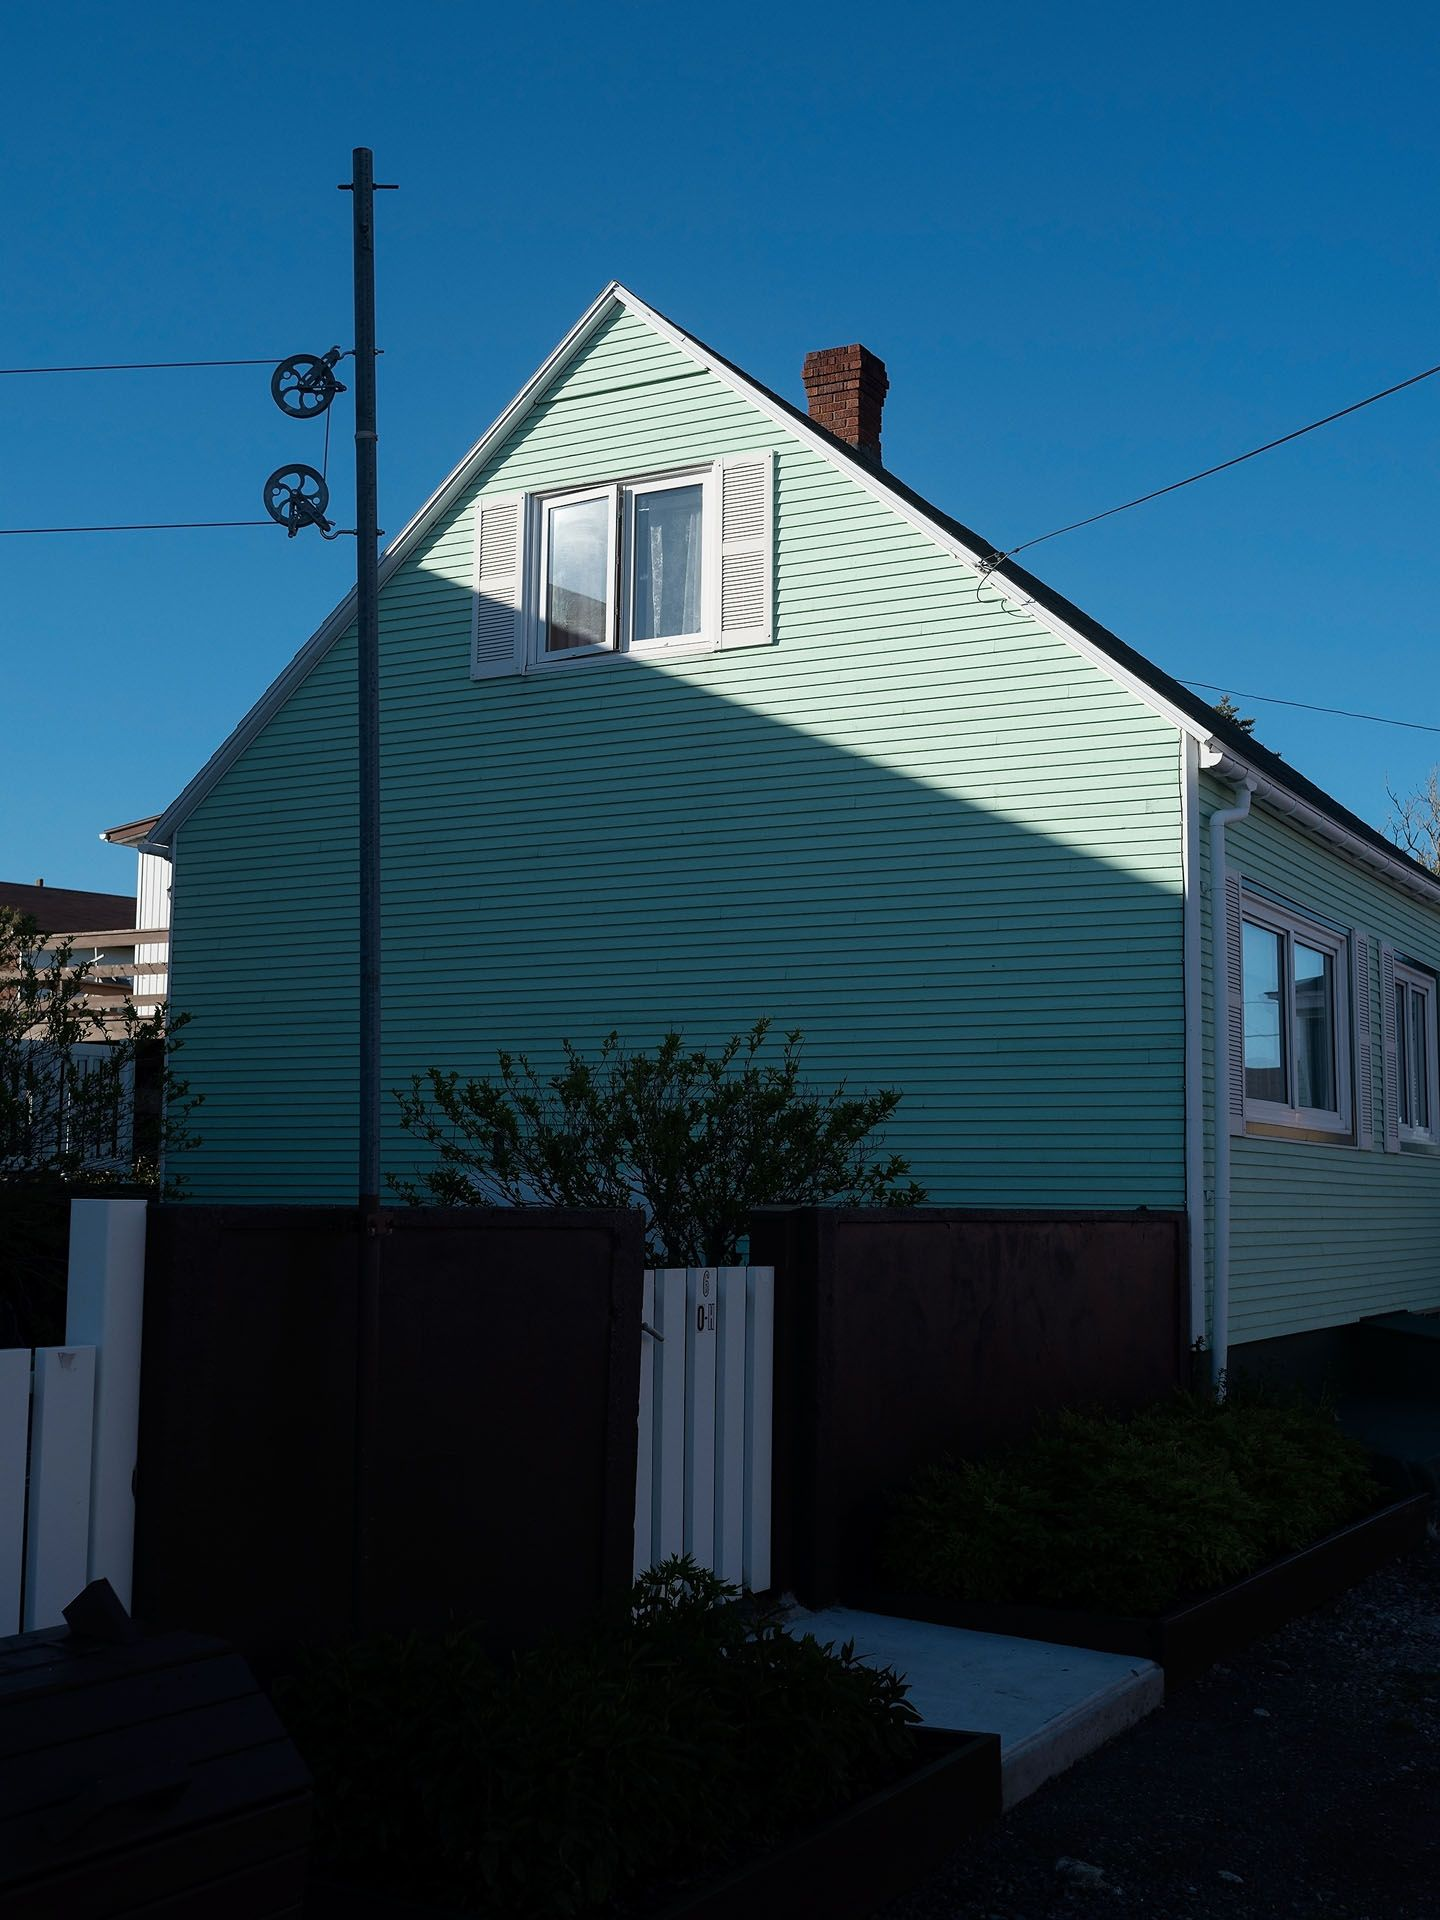 classical seaside french house painted in turquoise by Guillaume Simoneau in Saint-Pierre-et-Miquelon for M le mag